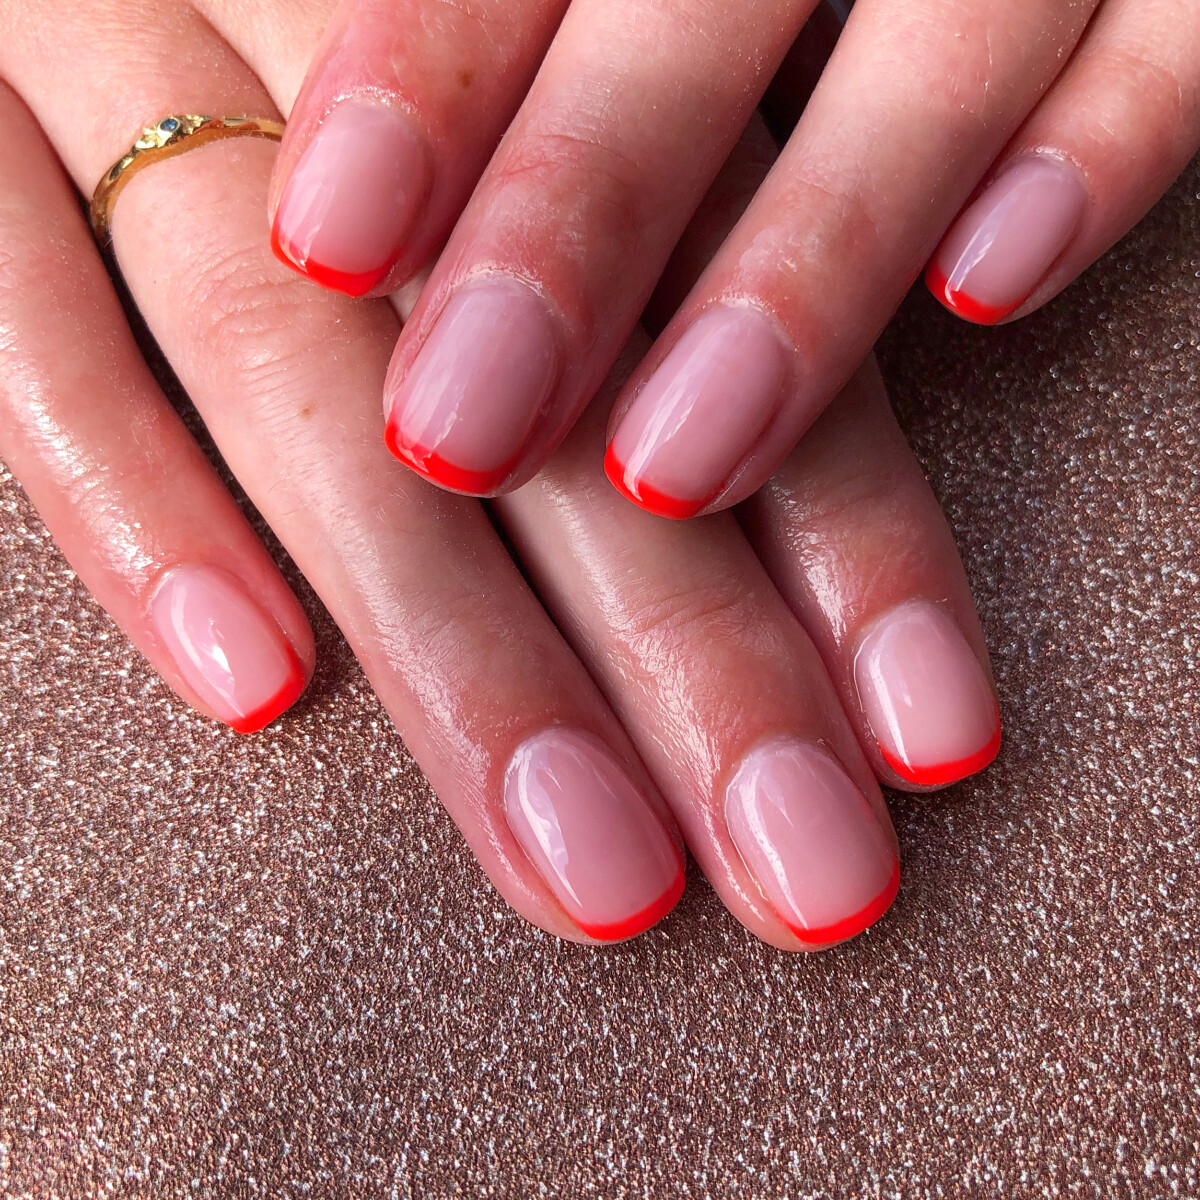 Manicure deluxe (french NEON)